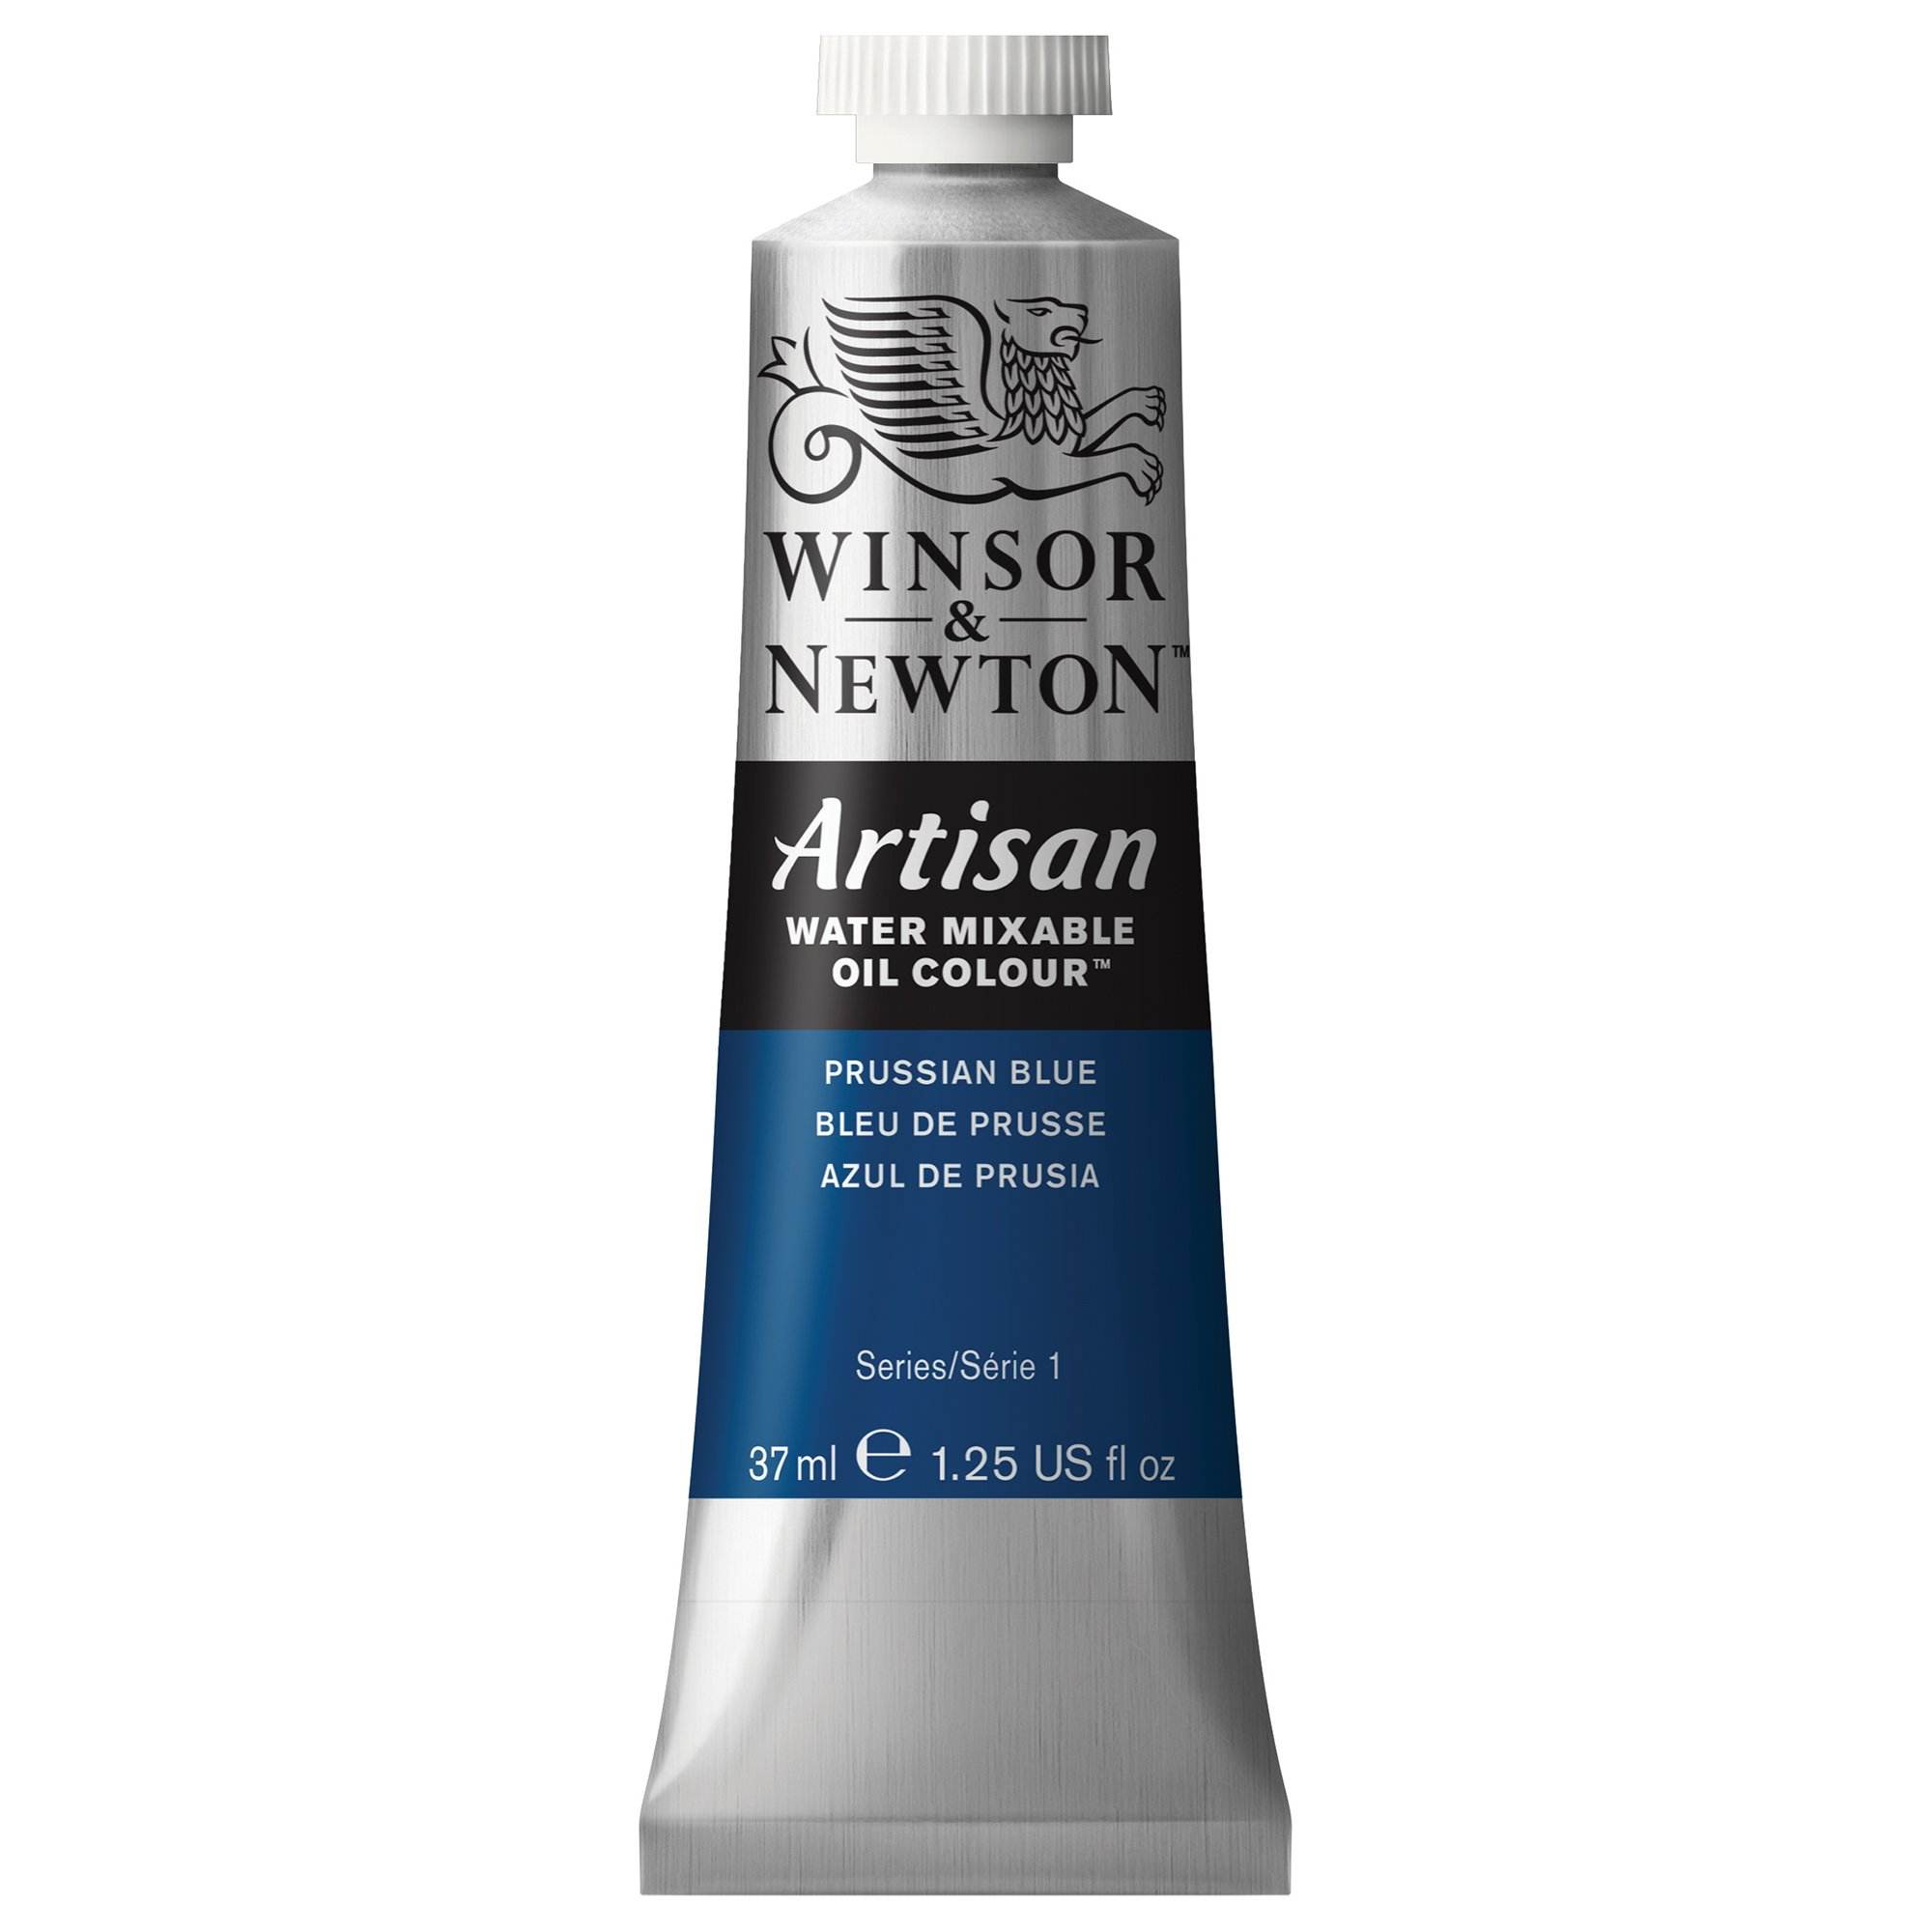 Winsor & Newton Artisan Water Mixable Oil Colour, 37-ml Tube, Prussian Blue